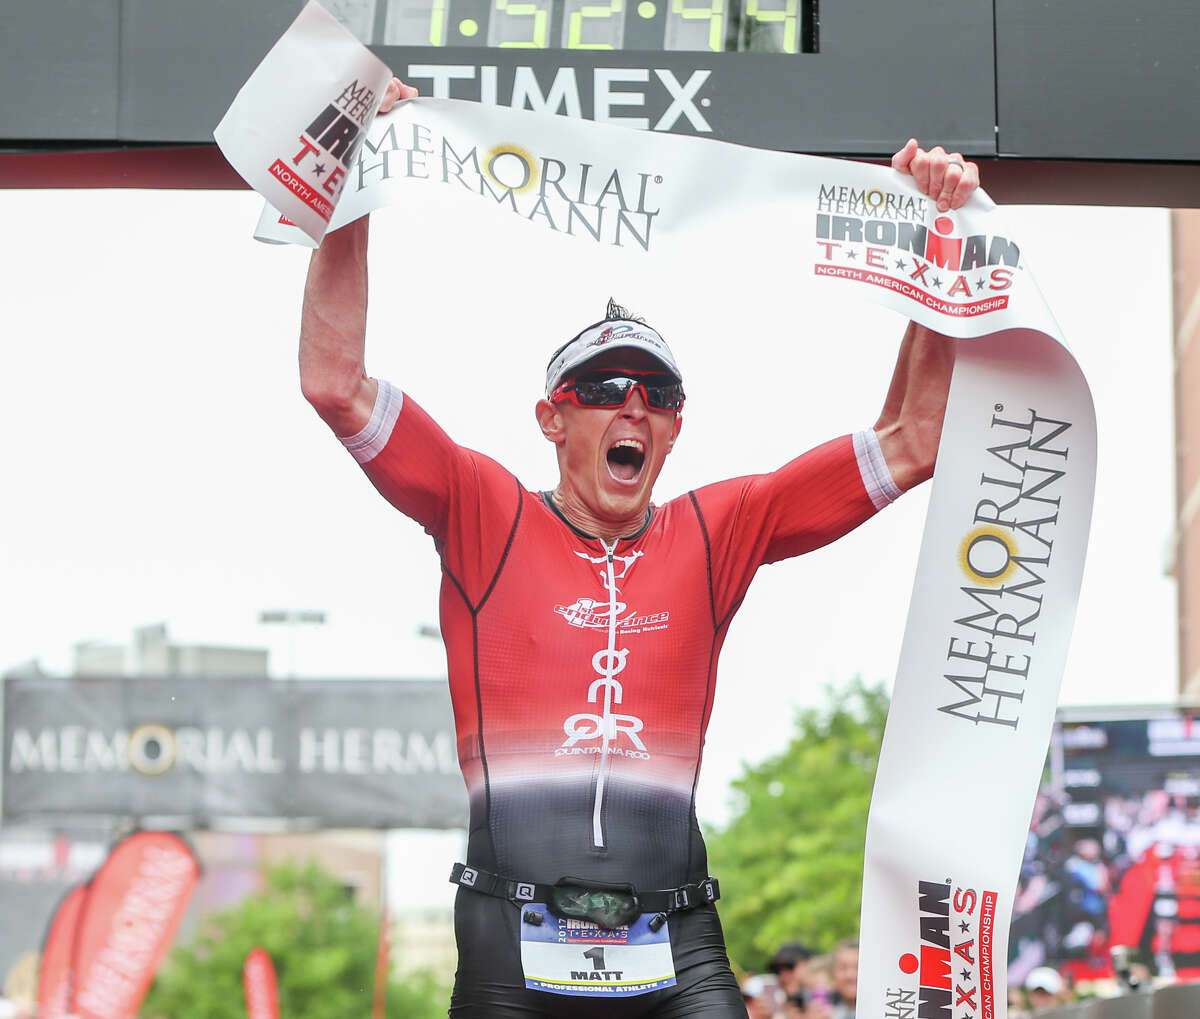 Matt Hanson, of Iowa, celebrates placing first during the Memorial Hermann IRONMAN North American Championship Texas on Saturday, April 22, 2017, in The Woodlands.